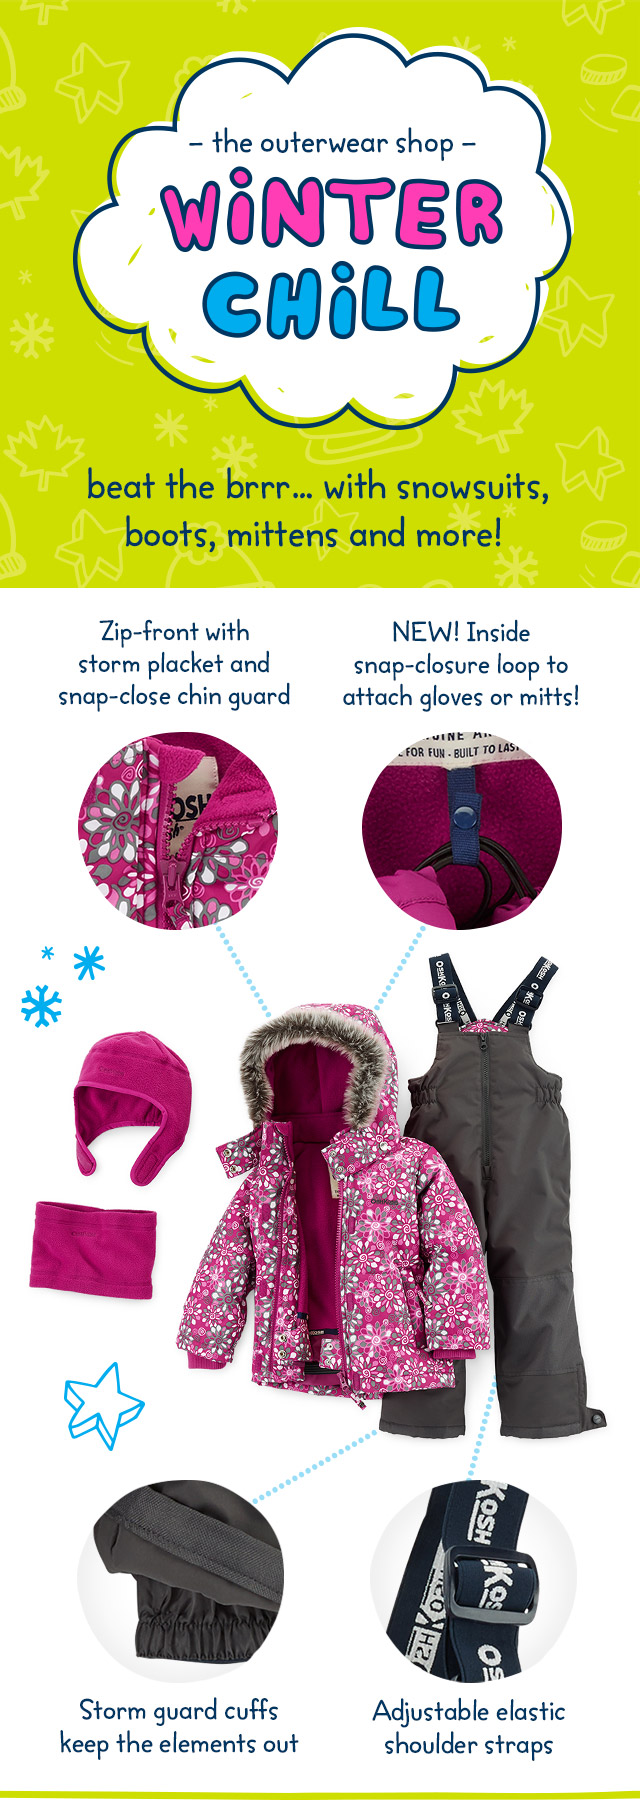 The Outerwear Shop - Winter Chill - beat the brrr... with snowsuits, boots, mittens and more! Zip-front storm placket and snap-close chin guard - Storm guard cuffs keep the elements out - NEW! Inside snap-closure loop to attach gloves or mitts! - Adjustable elastic shoulder straps